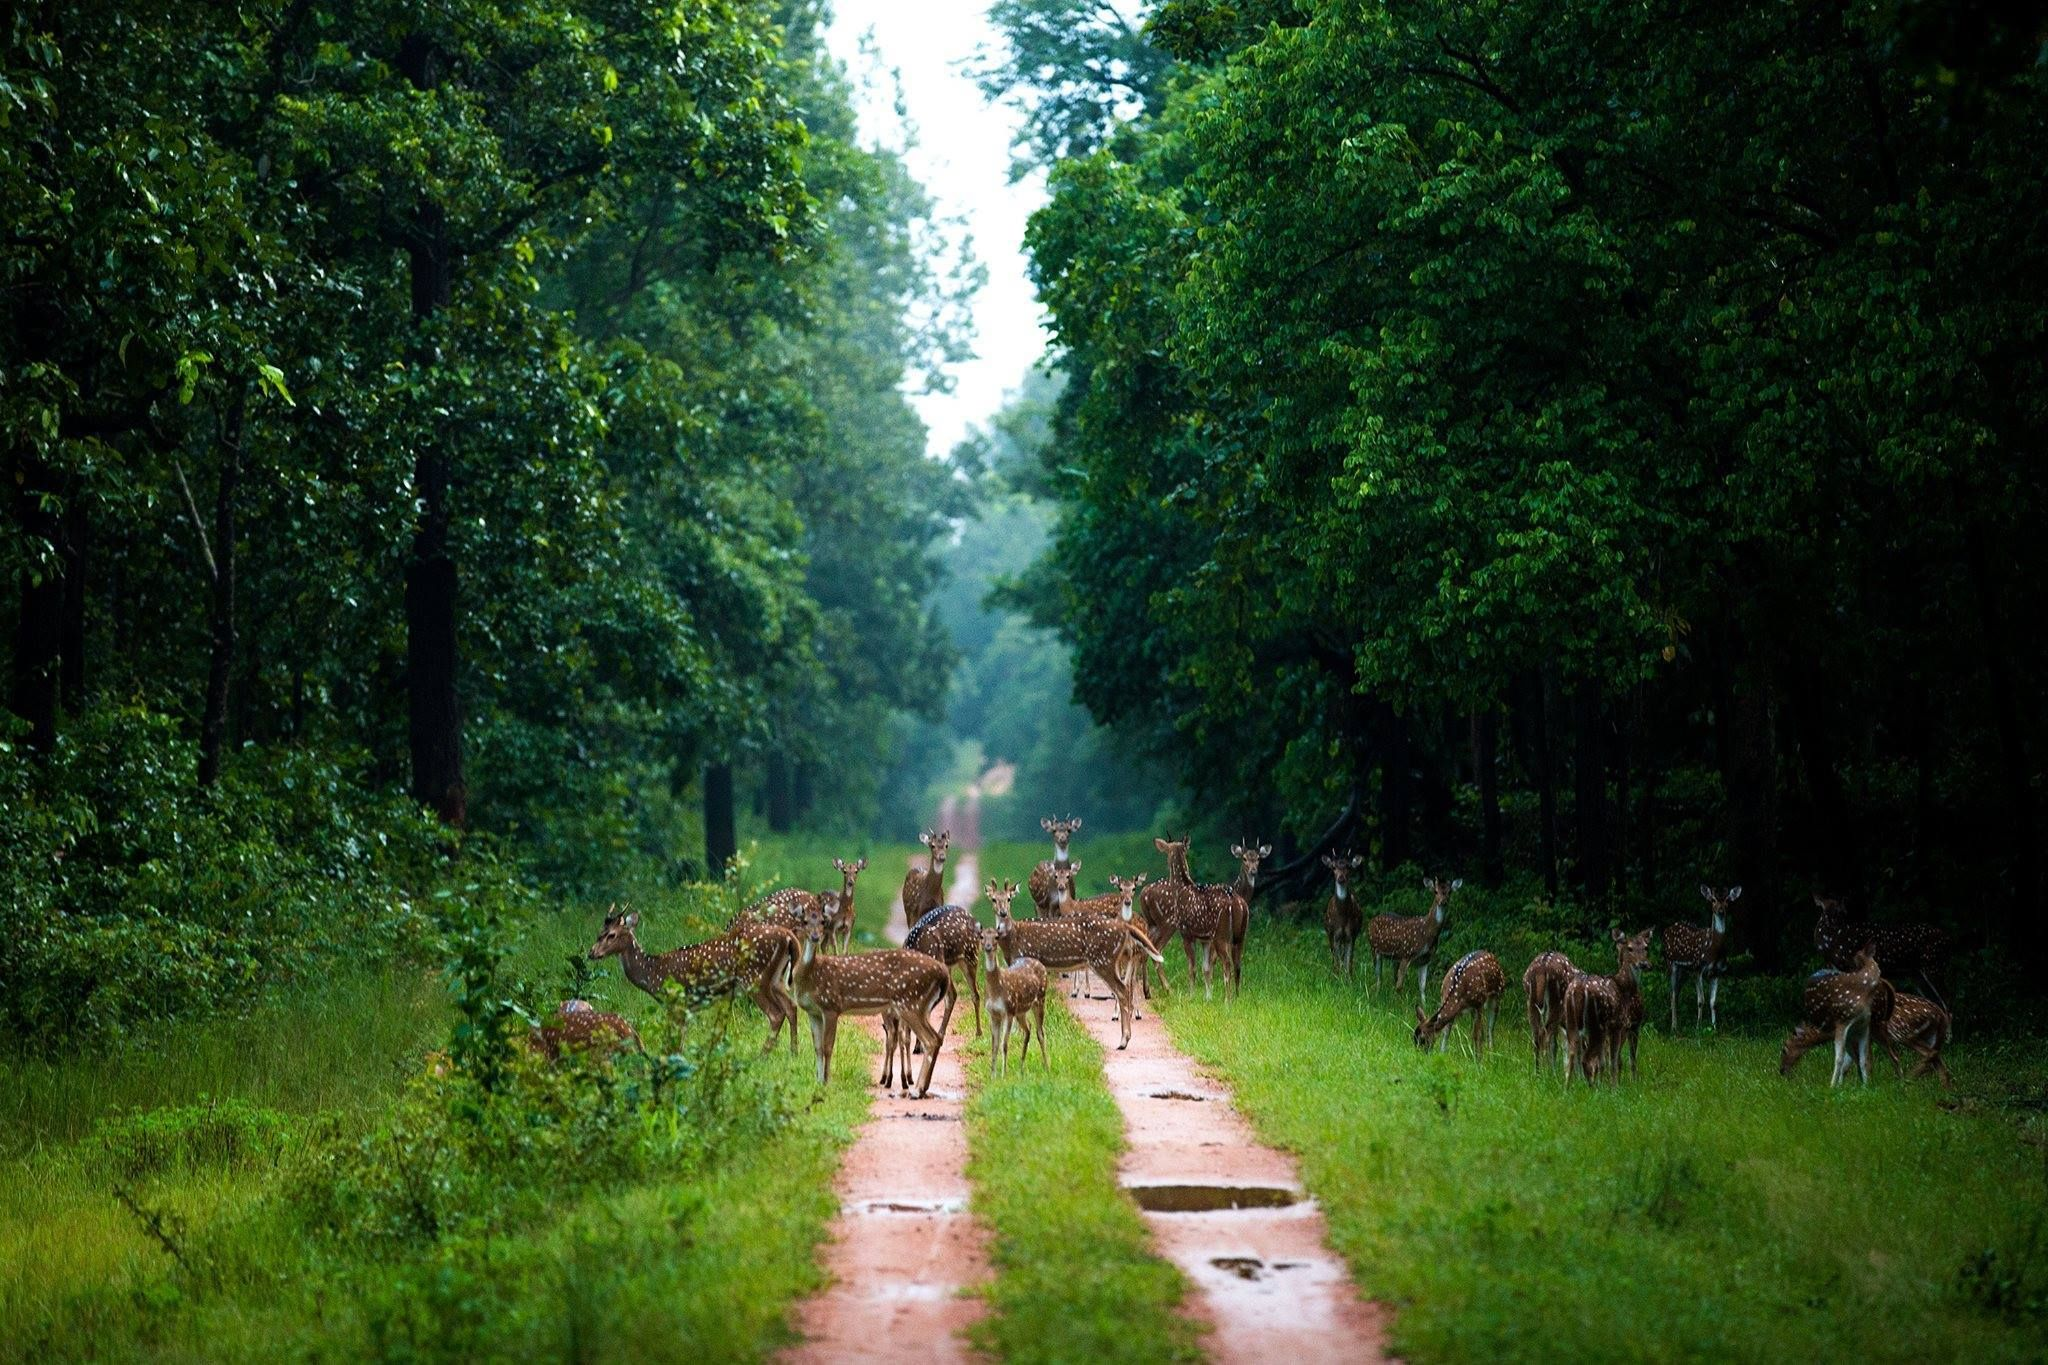 Barnawapara Wildlife Sanctuary is a nature lover's paradise. An exciting tour to #Barnawapara_Wildlife_Sanctuary assures a rewarding and #memorable #experience for all #wildlife enthusiasts, nature lovers, and bird lovers.